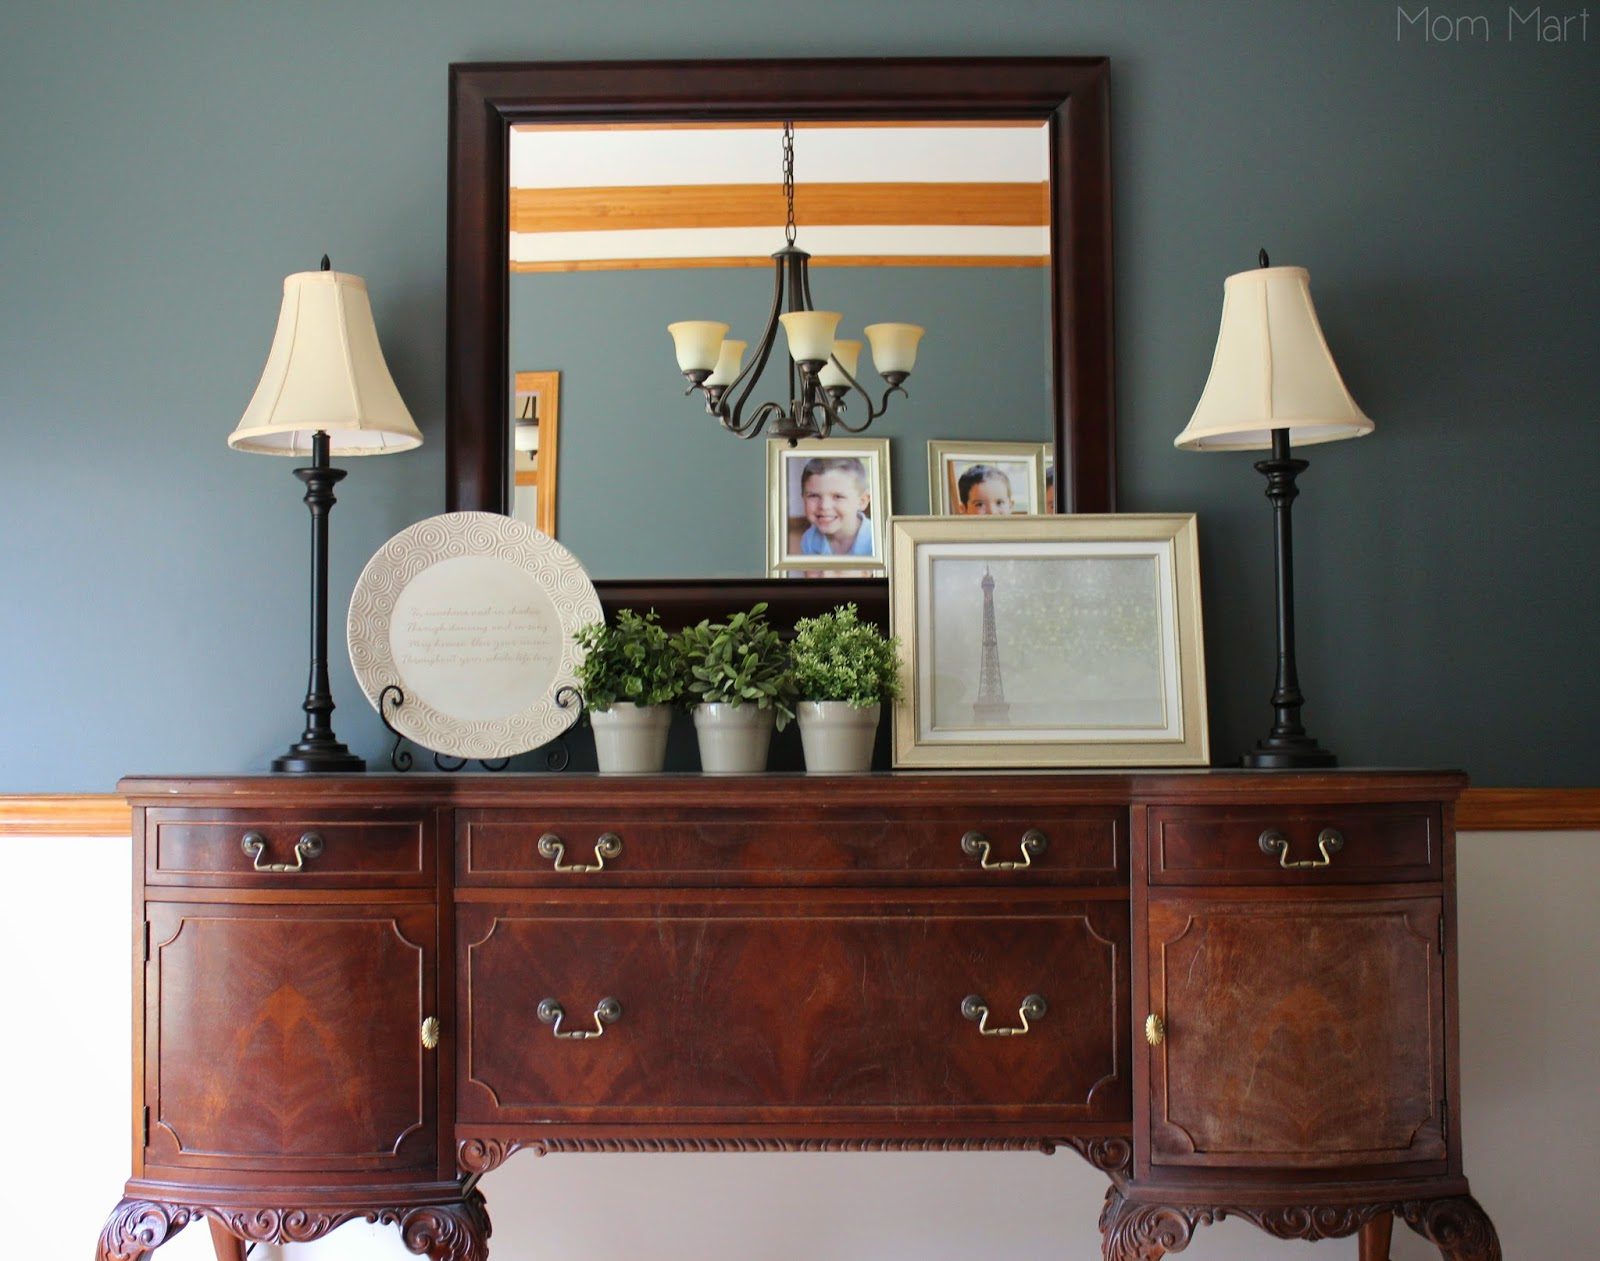 Inexpensive Dining Room Makeover Neutral DIY Paint ChairRail Vignette